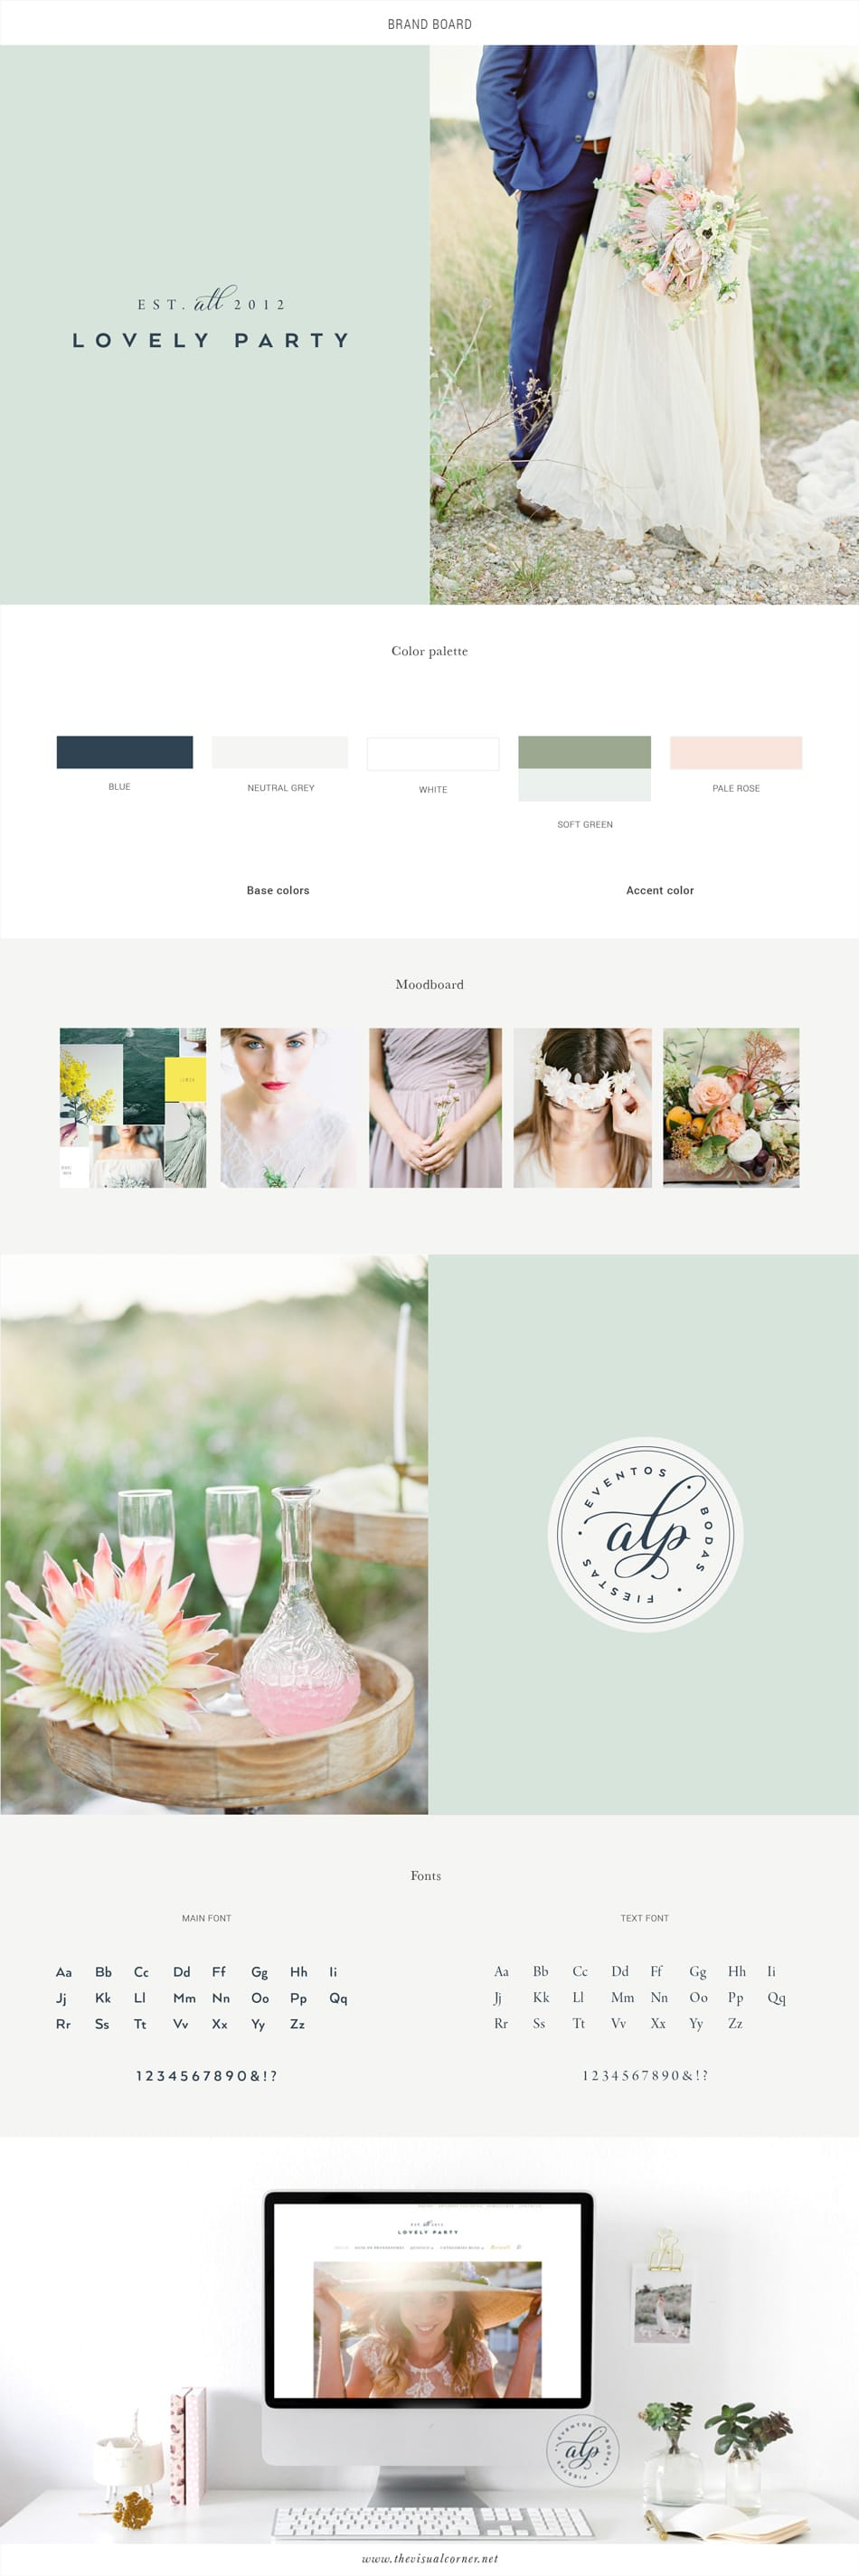 Re-Branding and Web Design for All Lovely Party